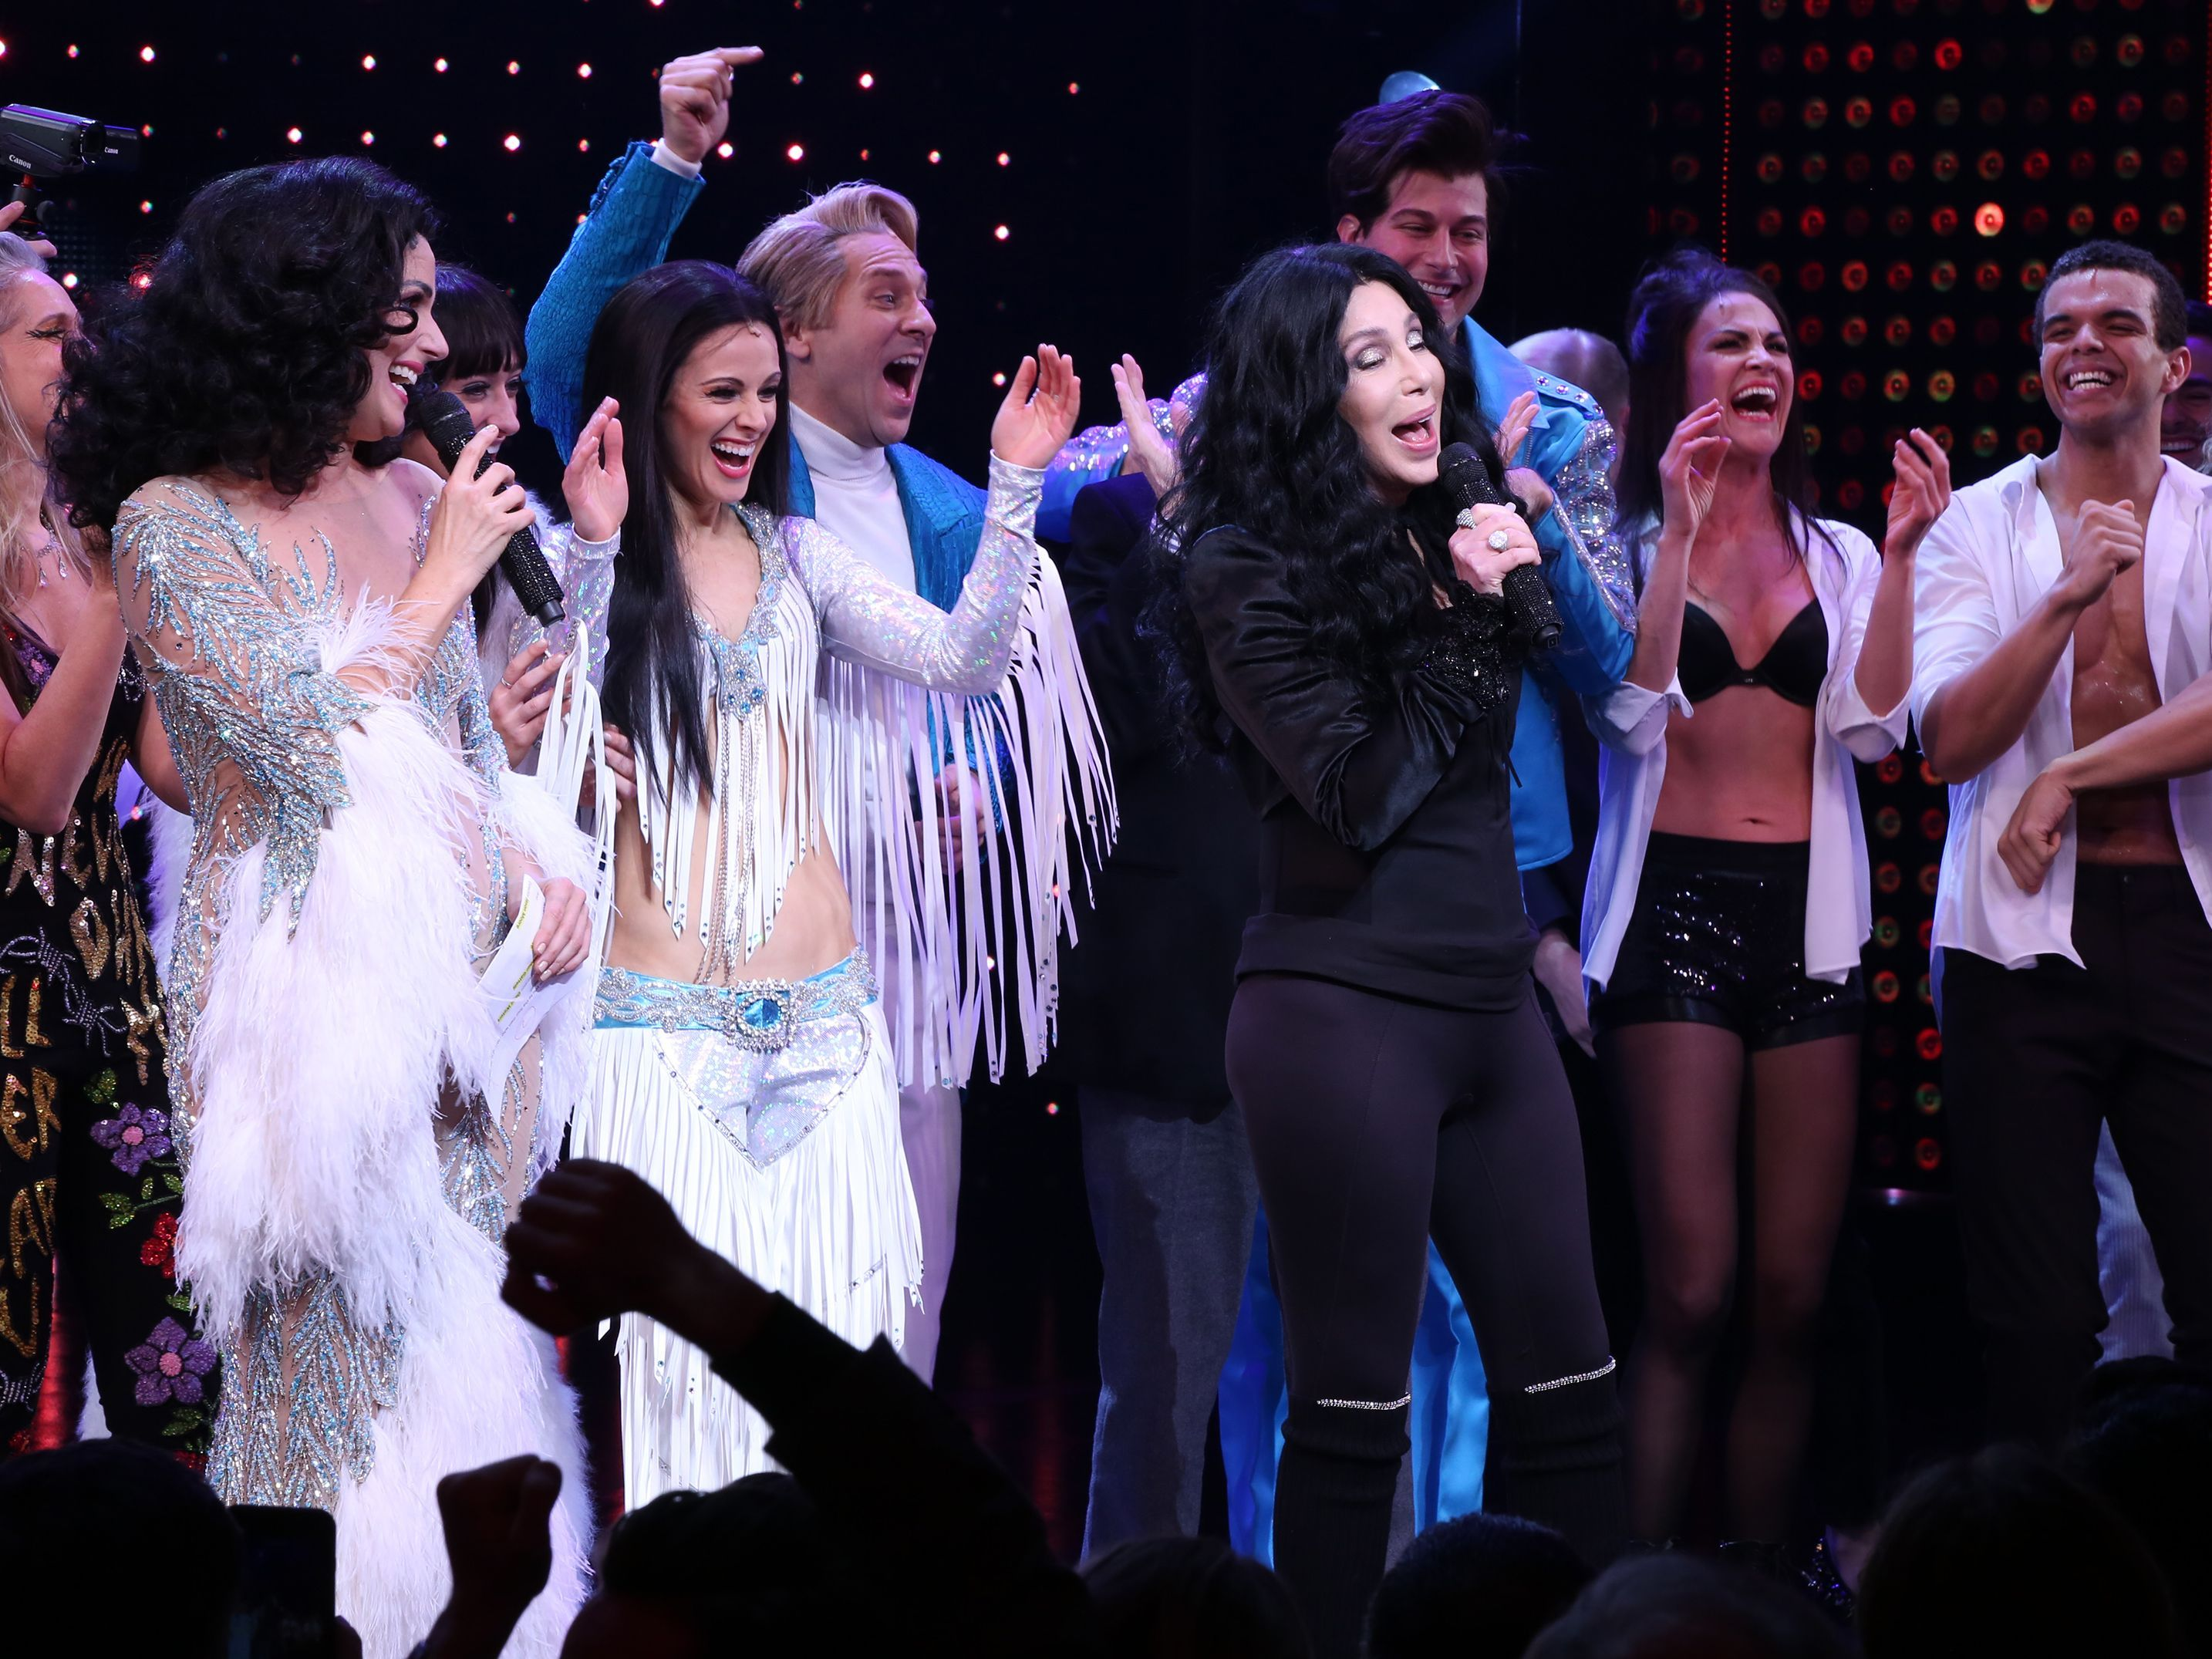 u0026quot the cher show u0026quot  is great fun  but what happened to chaz